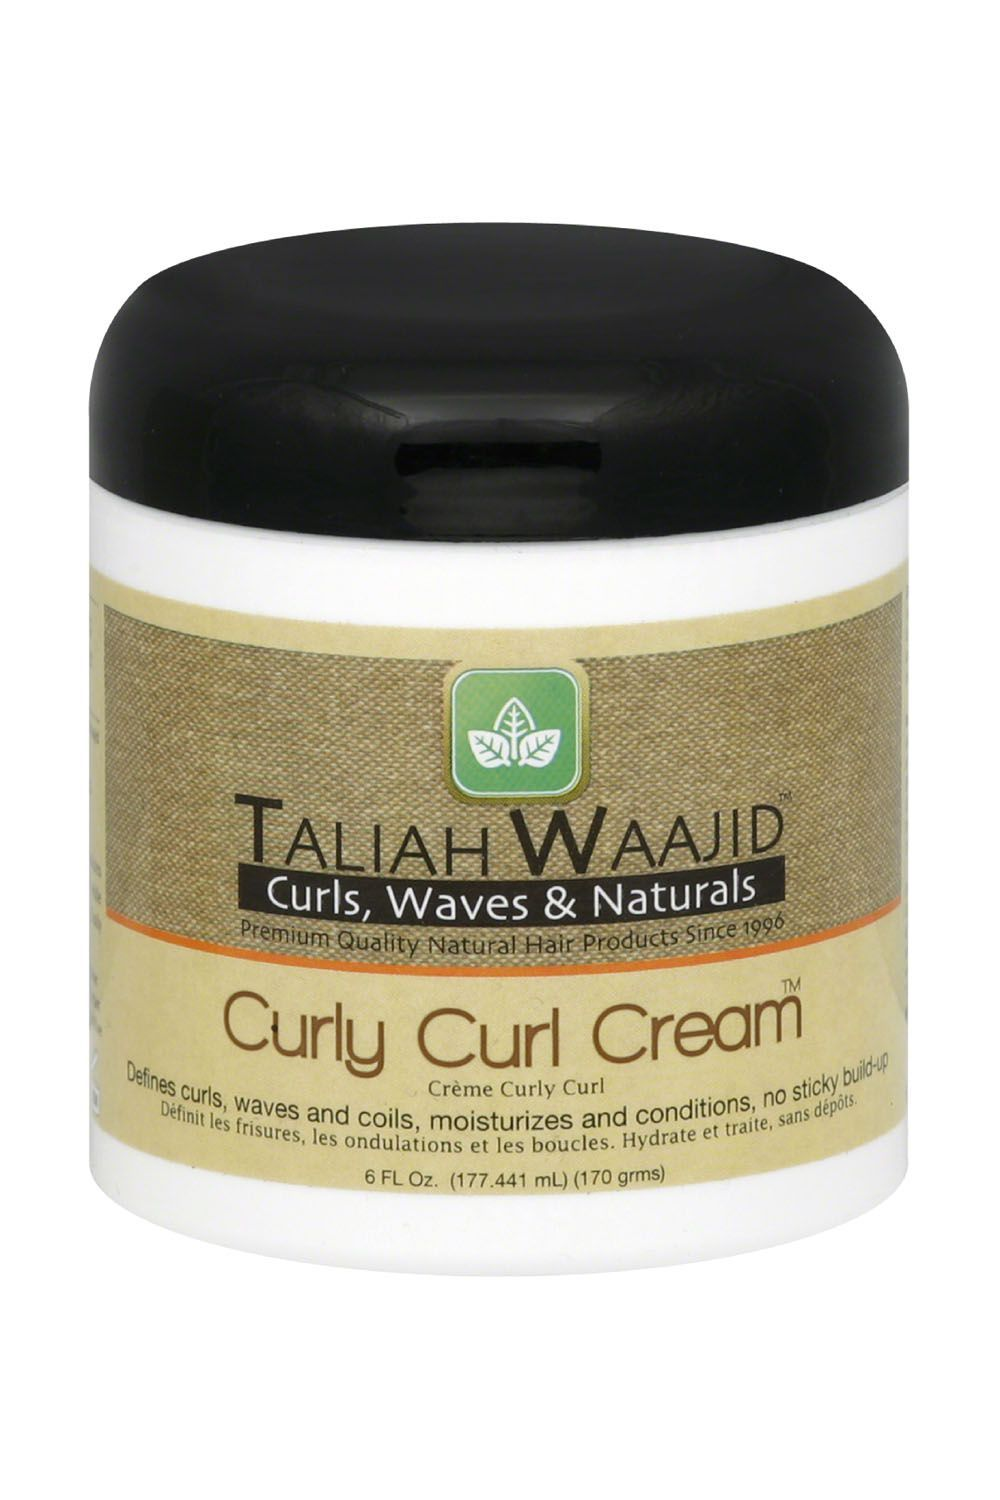 15 Best Curl Creams For Natural Hair Of 2020